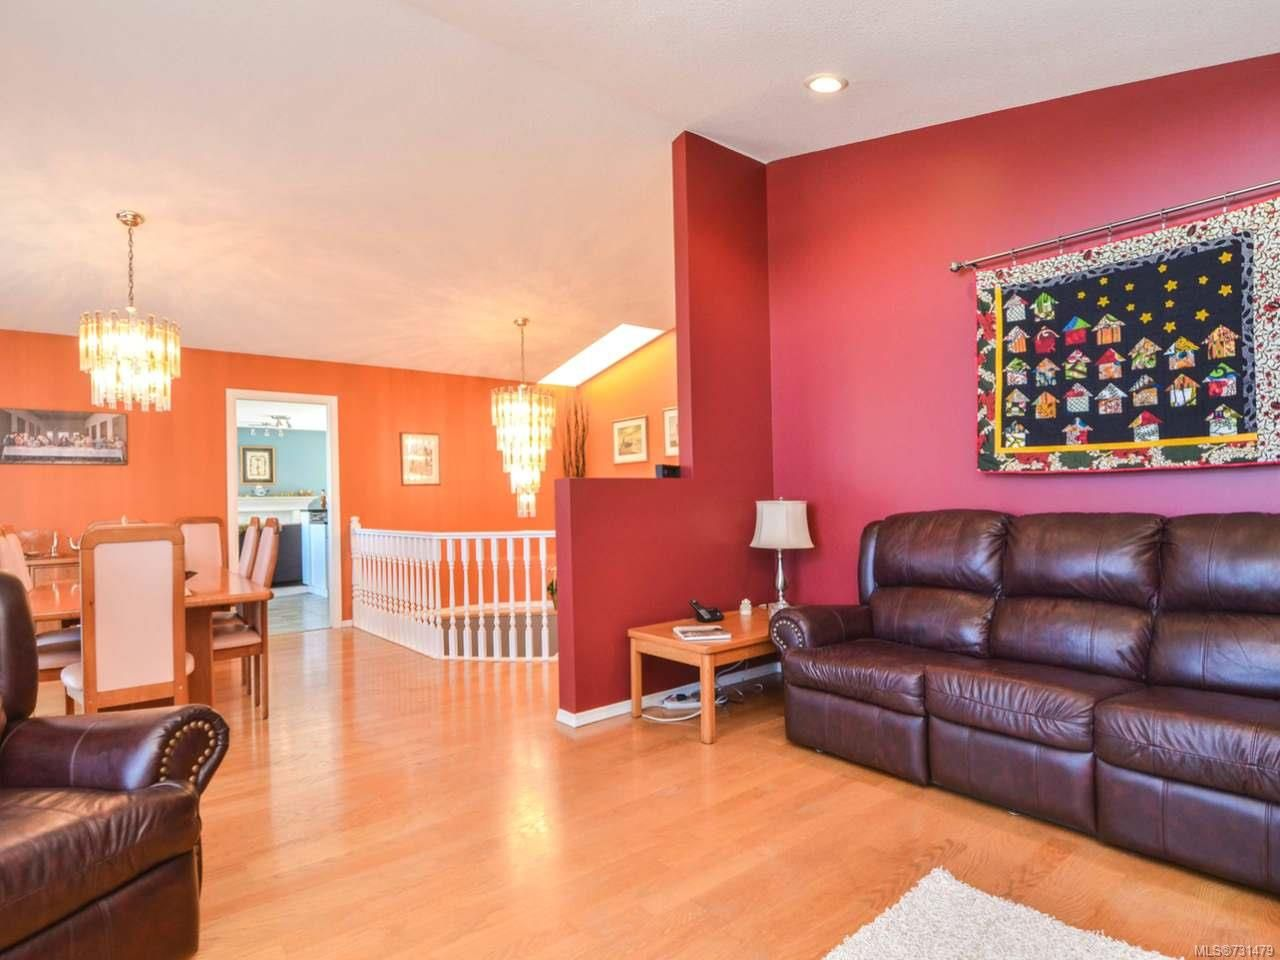 Photo 6: Photos: 753 Bowen Dr in CAMPBELL RIVER: CR Willow Point House for sale (Campbell River)  : MLS®# 731479